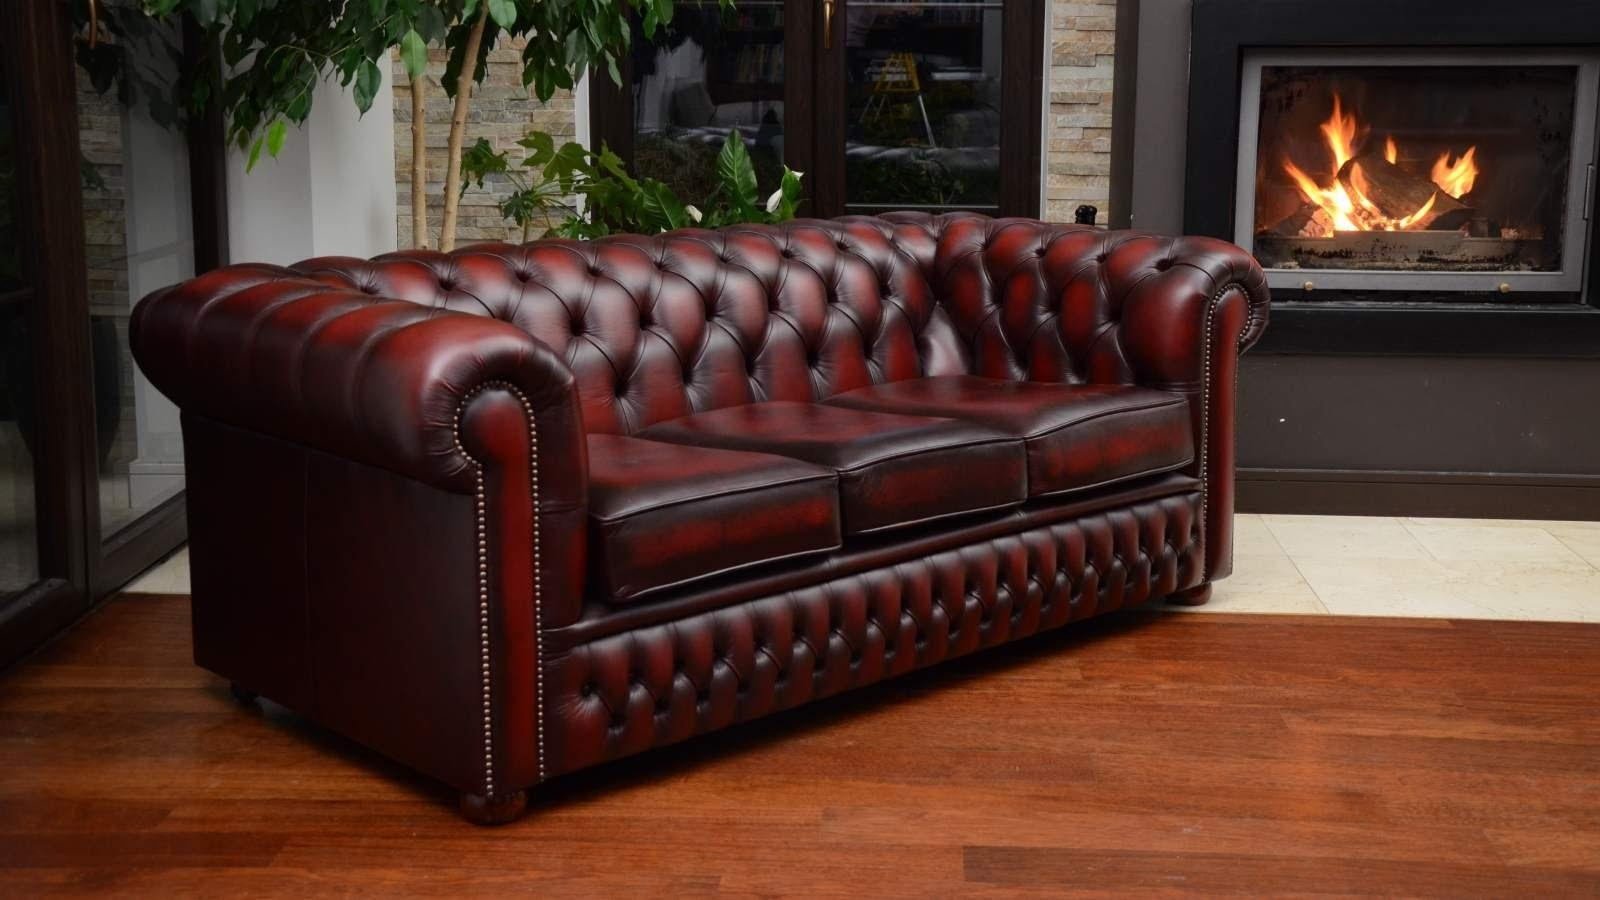 Kanapa Chesterfield 3 Osobowa – 3 Seater Chesterfield Couch – Youtube With Red Leather Chesterfield Chairs (View 19 of 20)